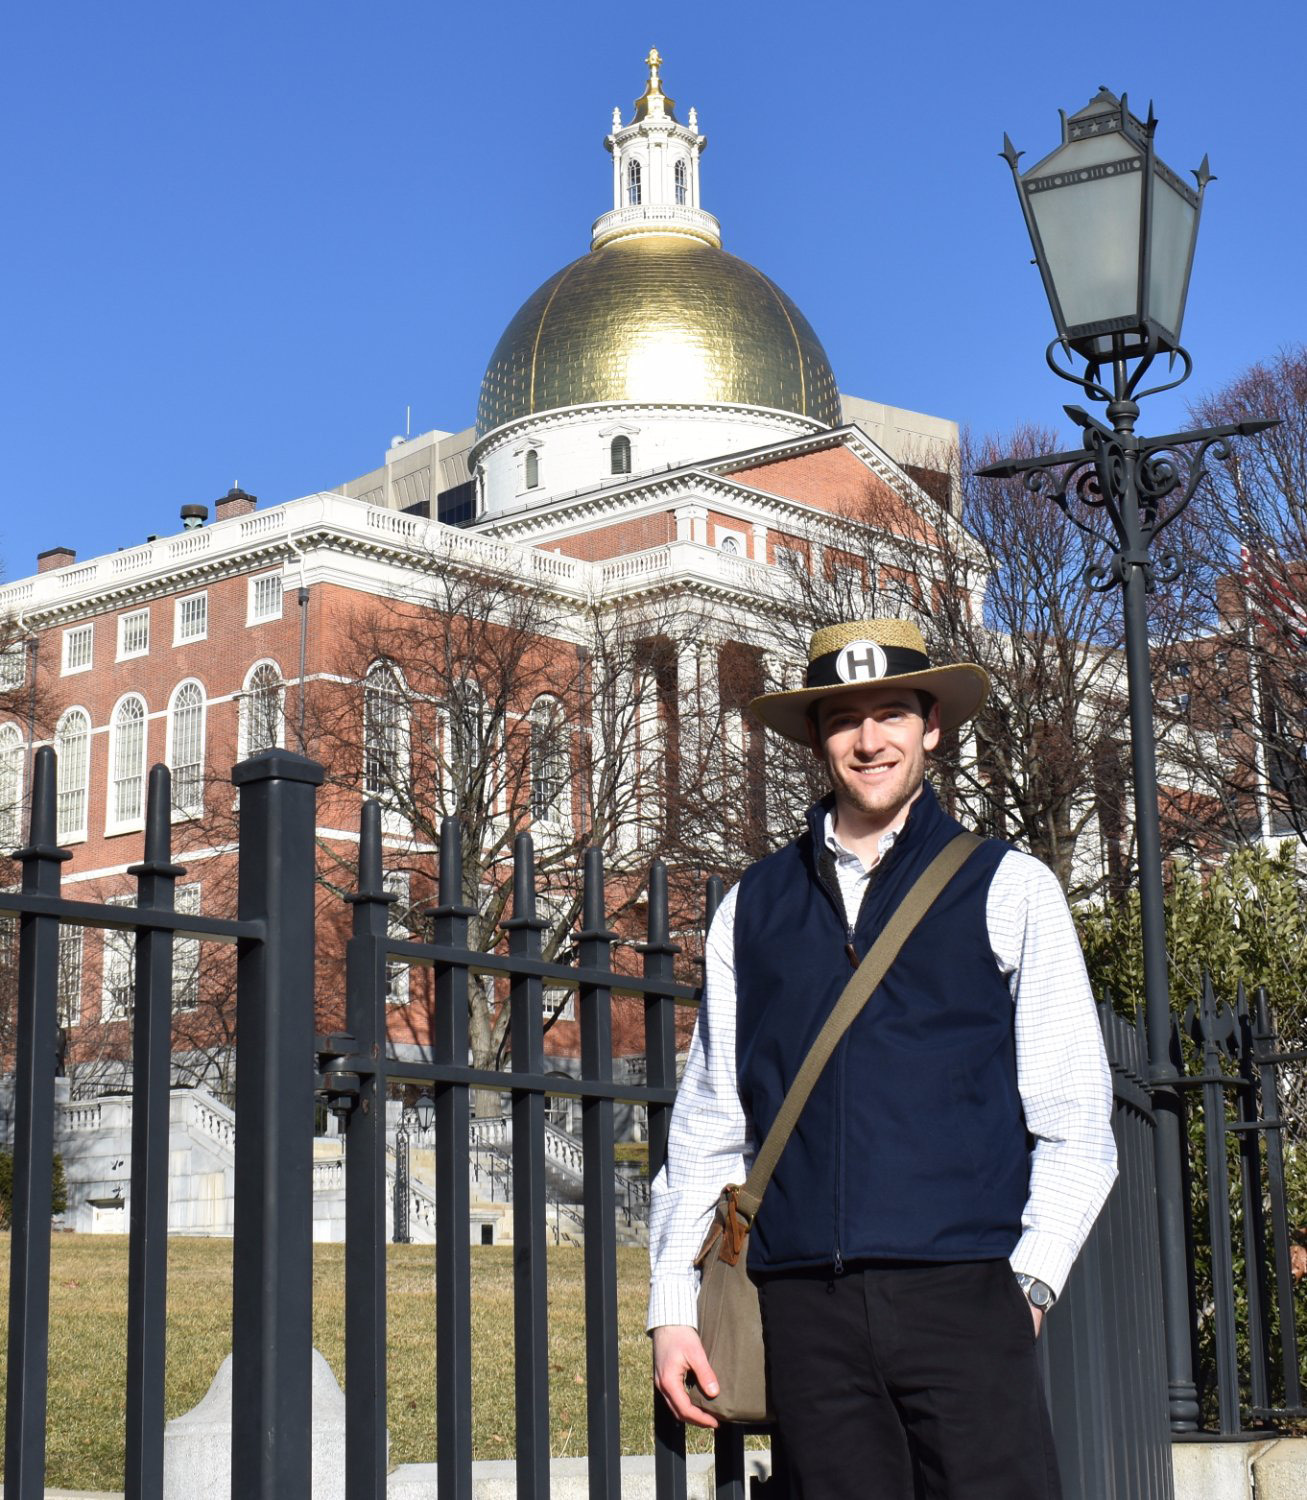 Durham native and the man behind Hub Town Tours Ted Clark stands outside of the Massachusetts State House. The hat helps guests find the tour guide. | Submitted photo